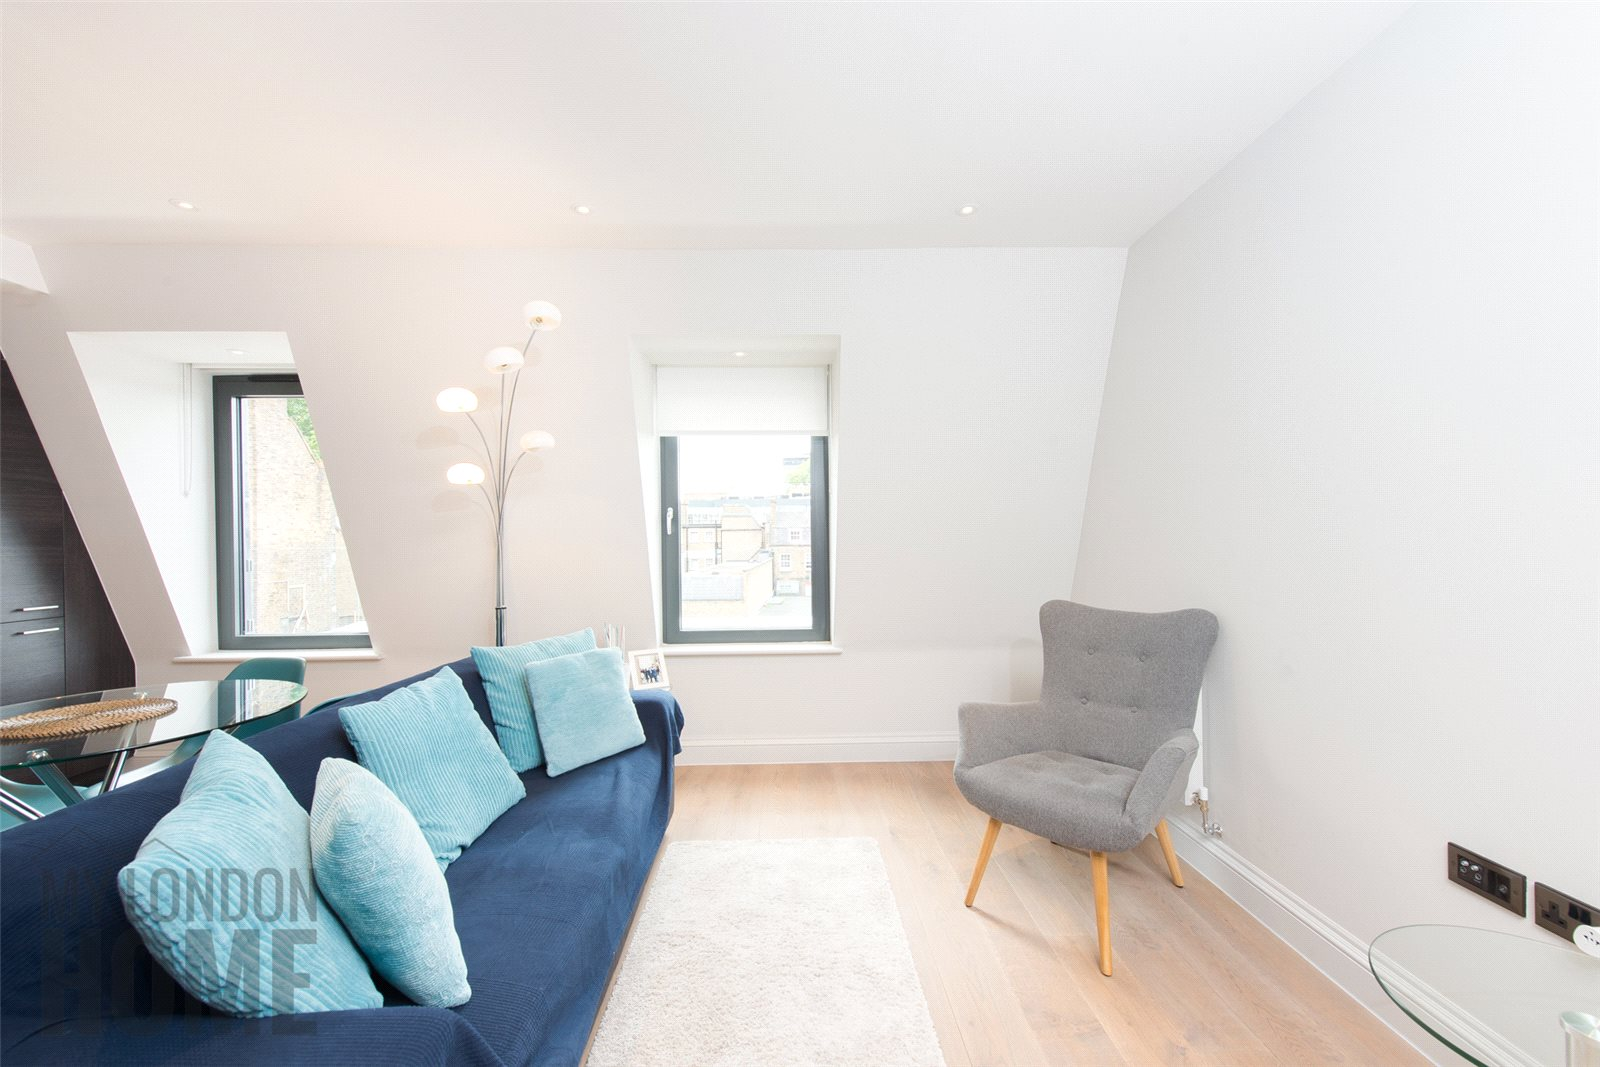 2 Bedrooms Apartment Flat for sale in The Lincolns, Grays Inn Road, London, WC1X